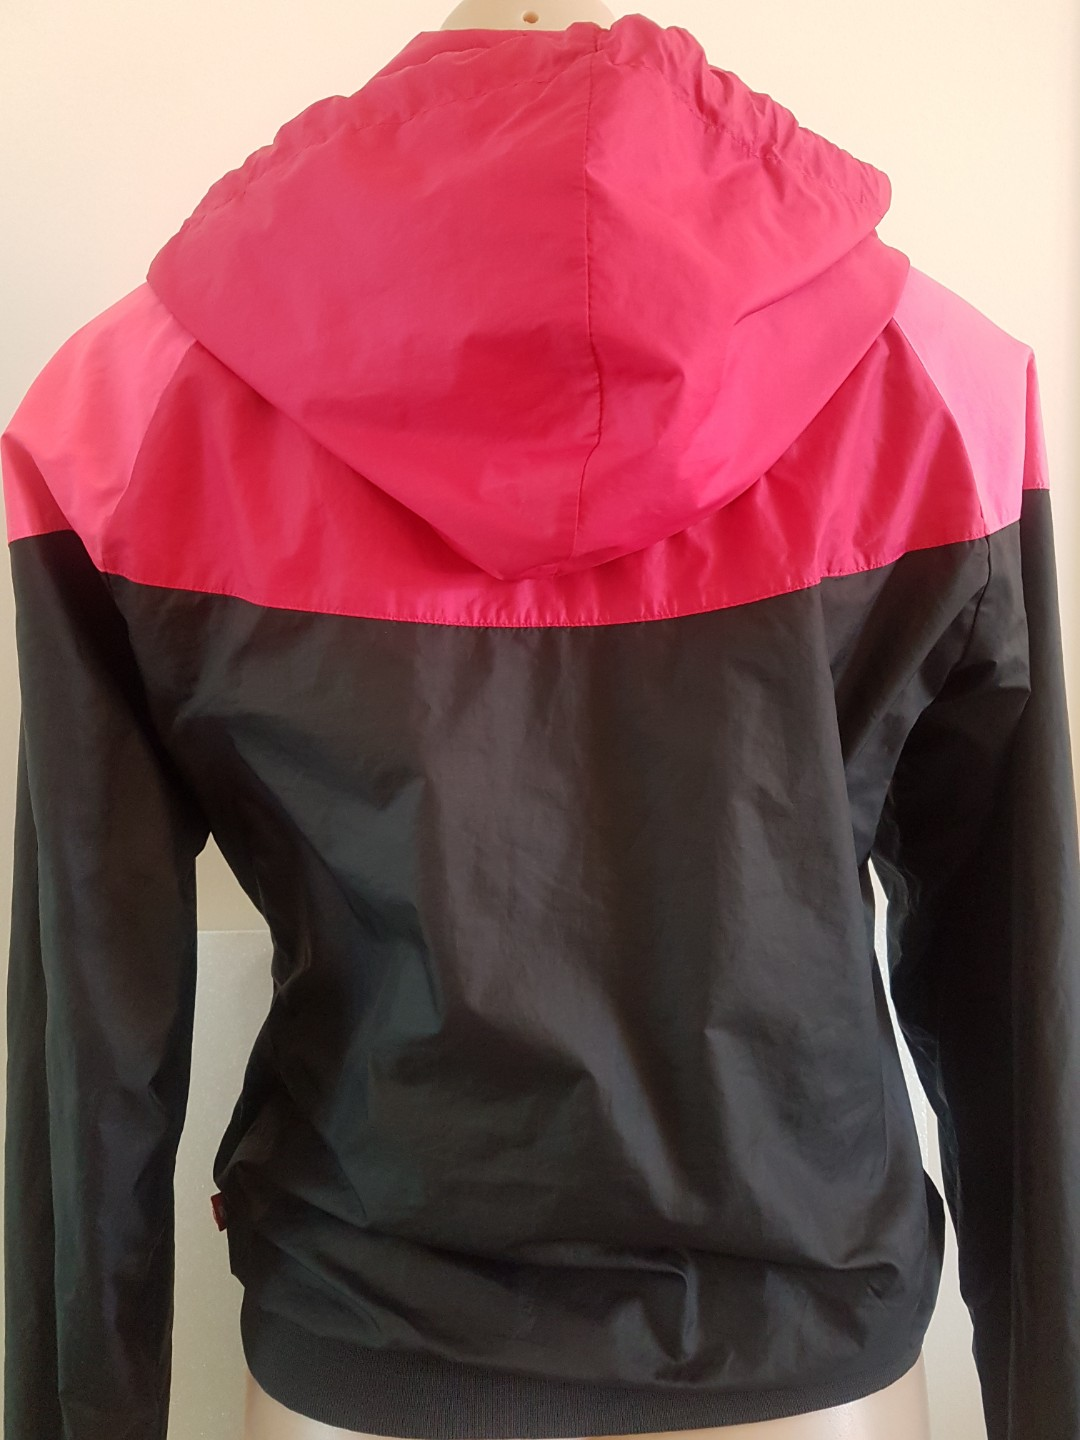 b40de82175f3 Nike Womens Windbreaker Jacket Pink Black Size M